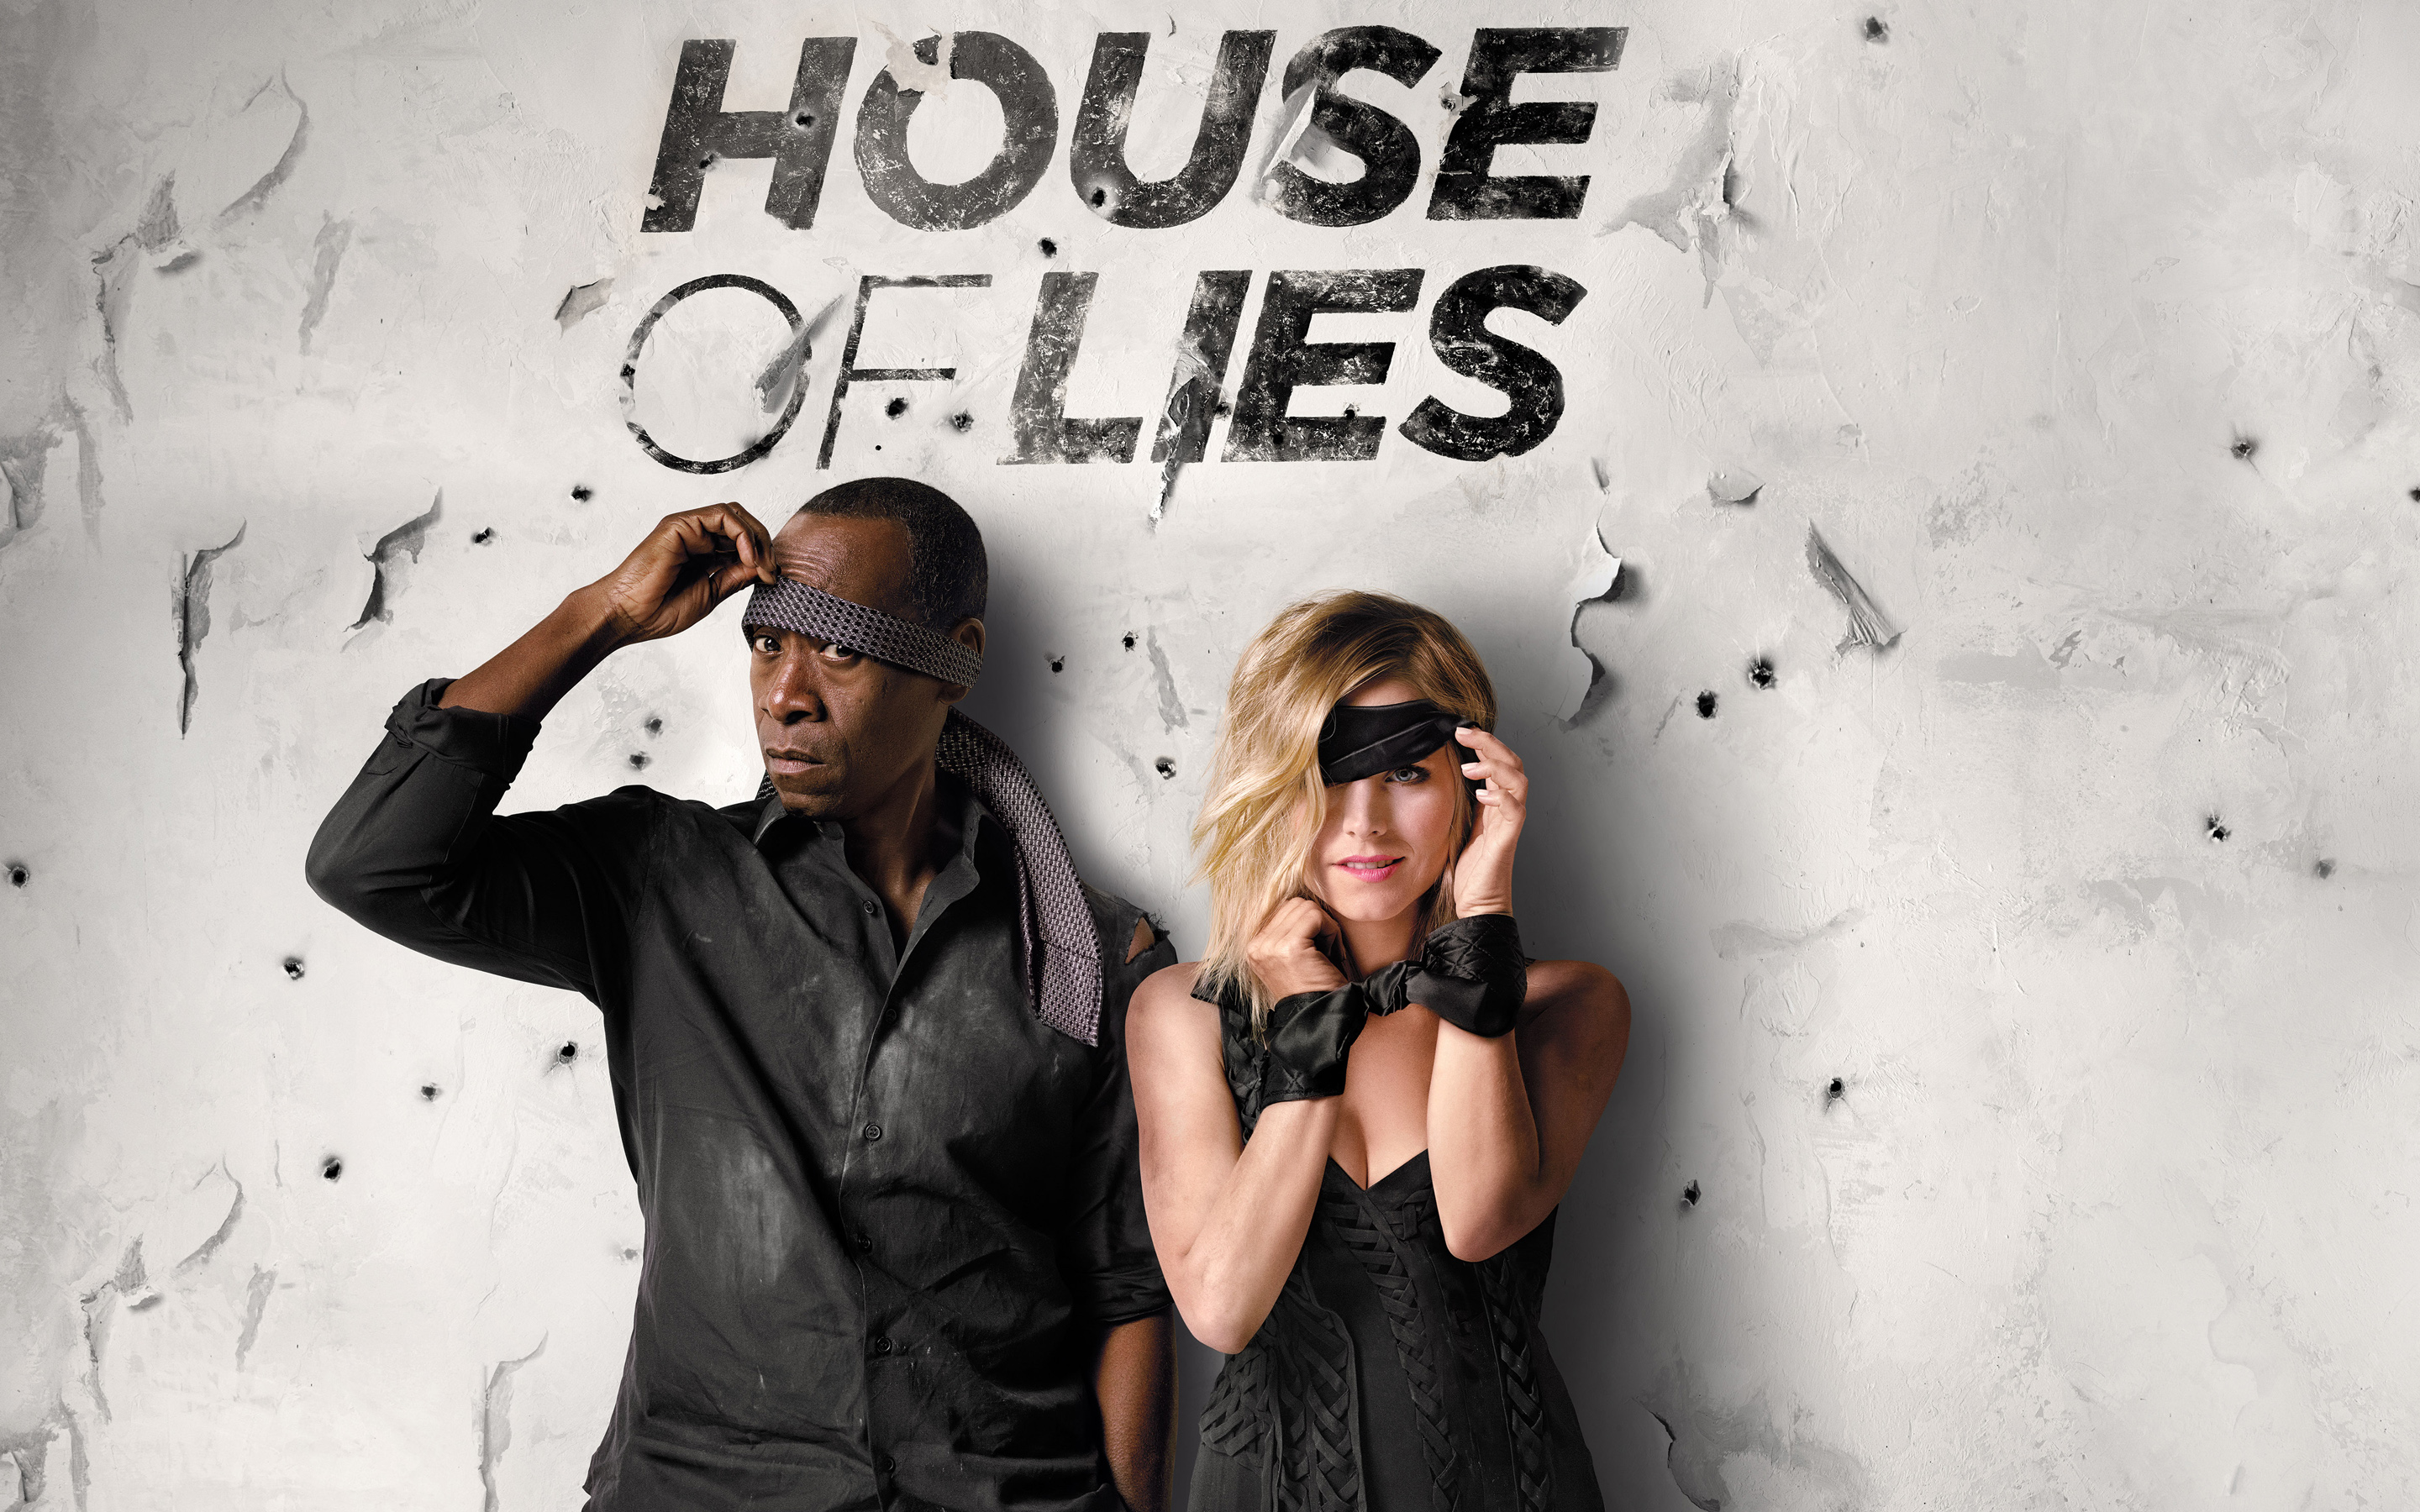 House of Lies TV Series Wallpapers | HD Wallpapers 137